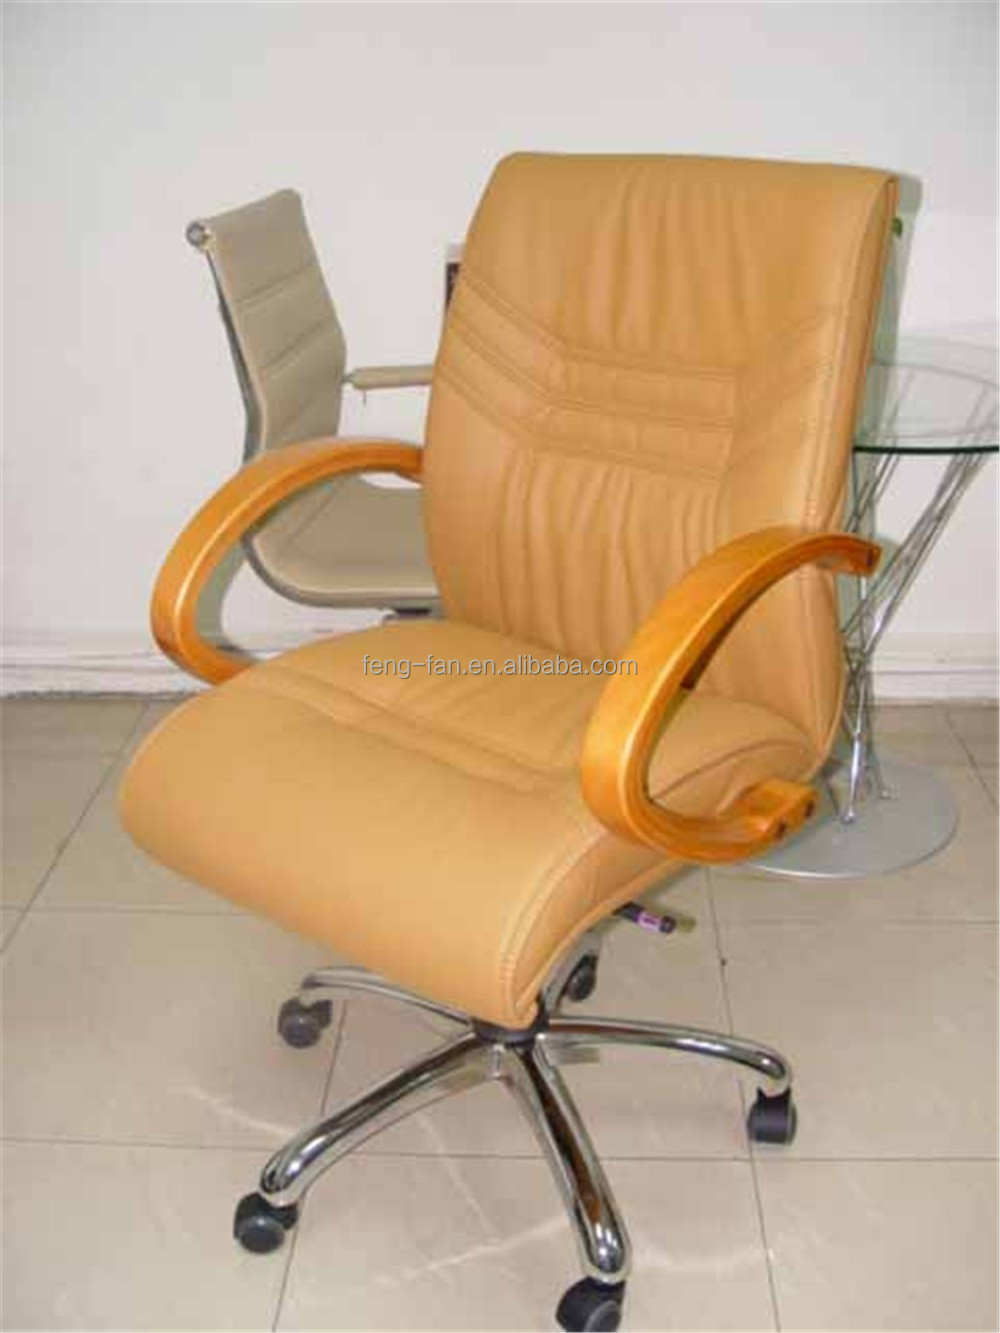 8156 Hot selling middle back support office chair factory direct sell customizable office chair